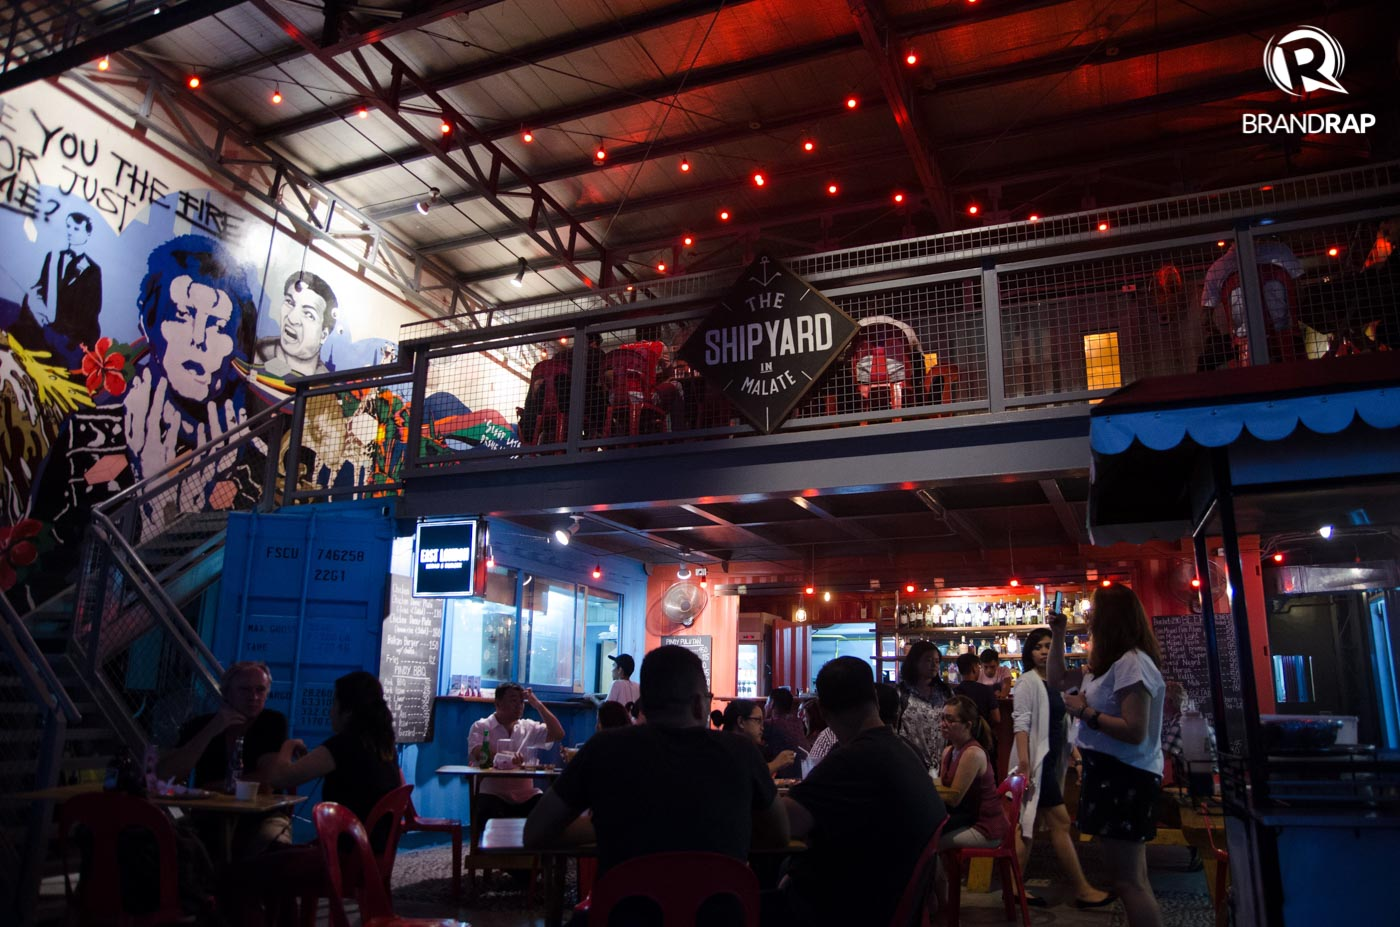 STANDOUT. Shipyard sits amid the restaurants and KTVs in Malate, serving up good pulutan fare, drinks, and music. Photo by Pauee Cadaing/Rappler